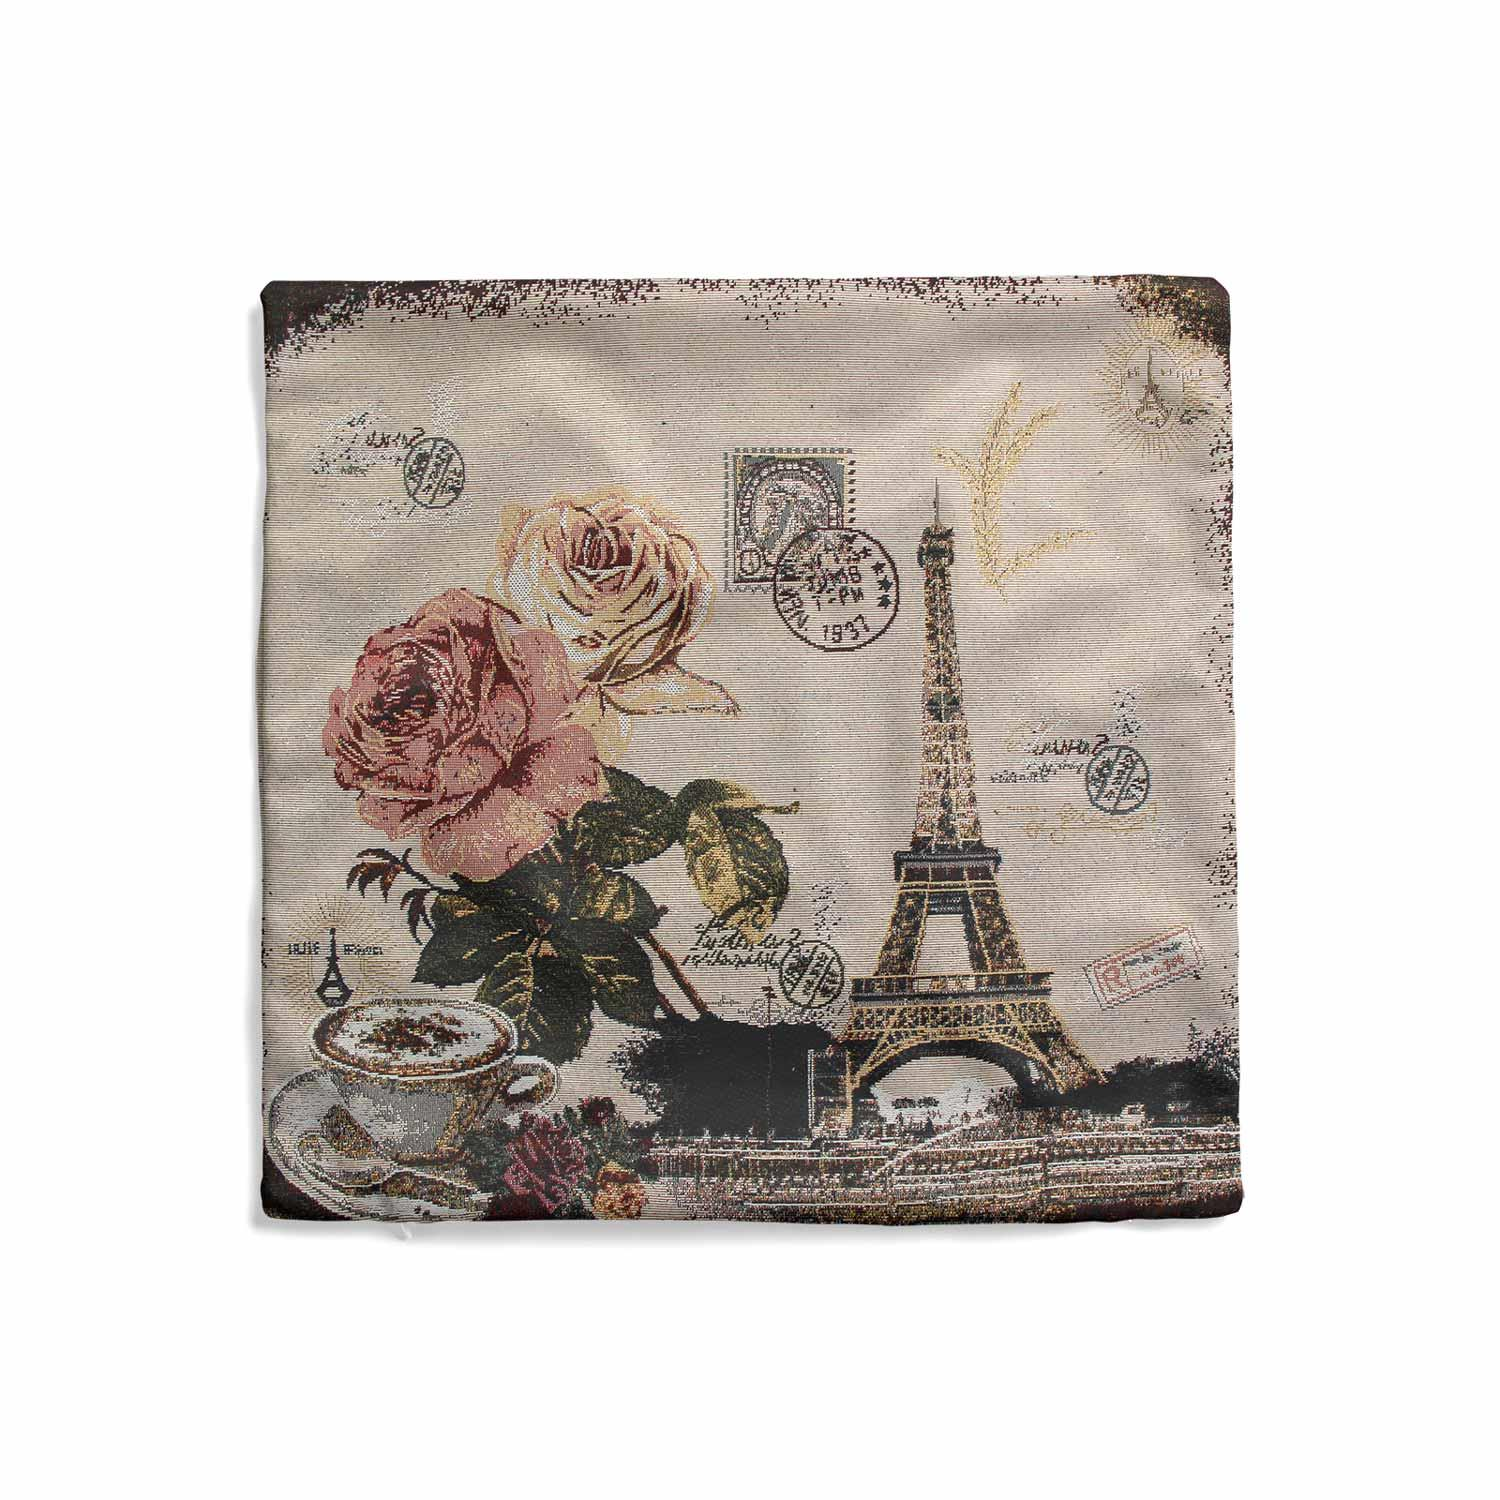 Tapestry-Cushion-Covers-Vintage-Pillow-Cover-Collection-18-034-45cm-Filled-Cushions thumbnail 154